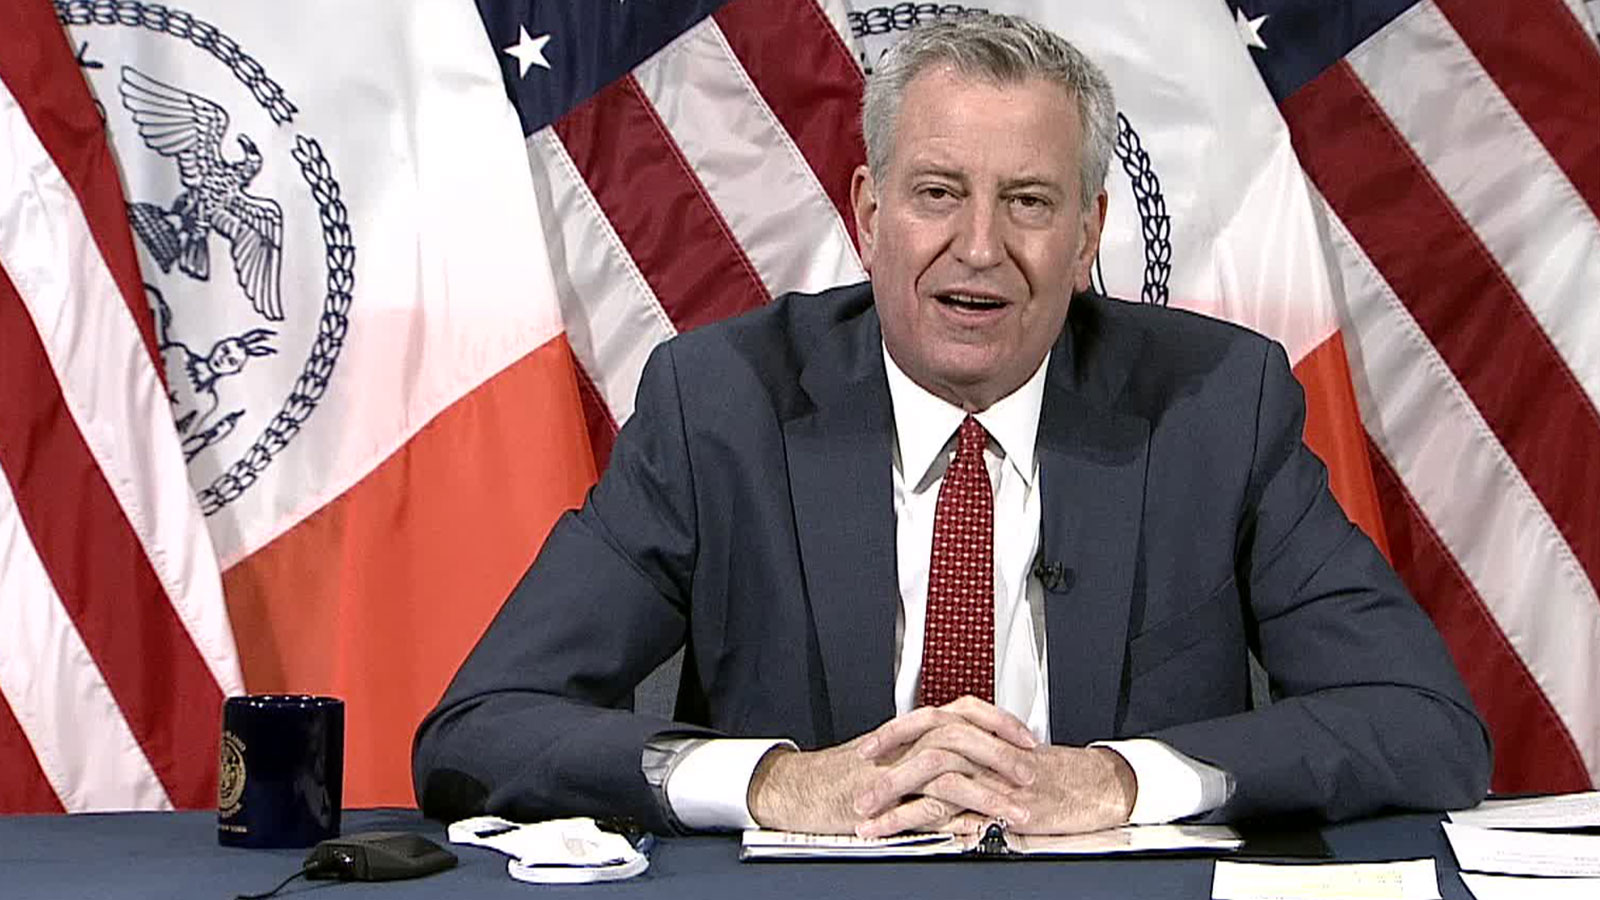 New York City Mayor Bill de Blasio speaks during a news conference on Tuesday, December 22.